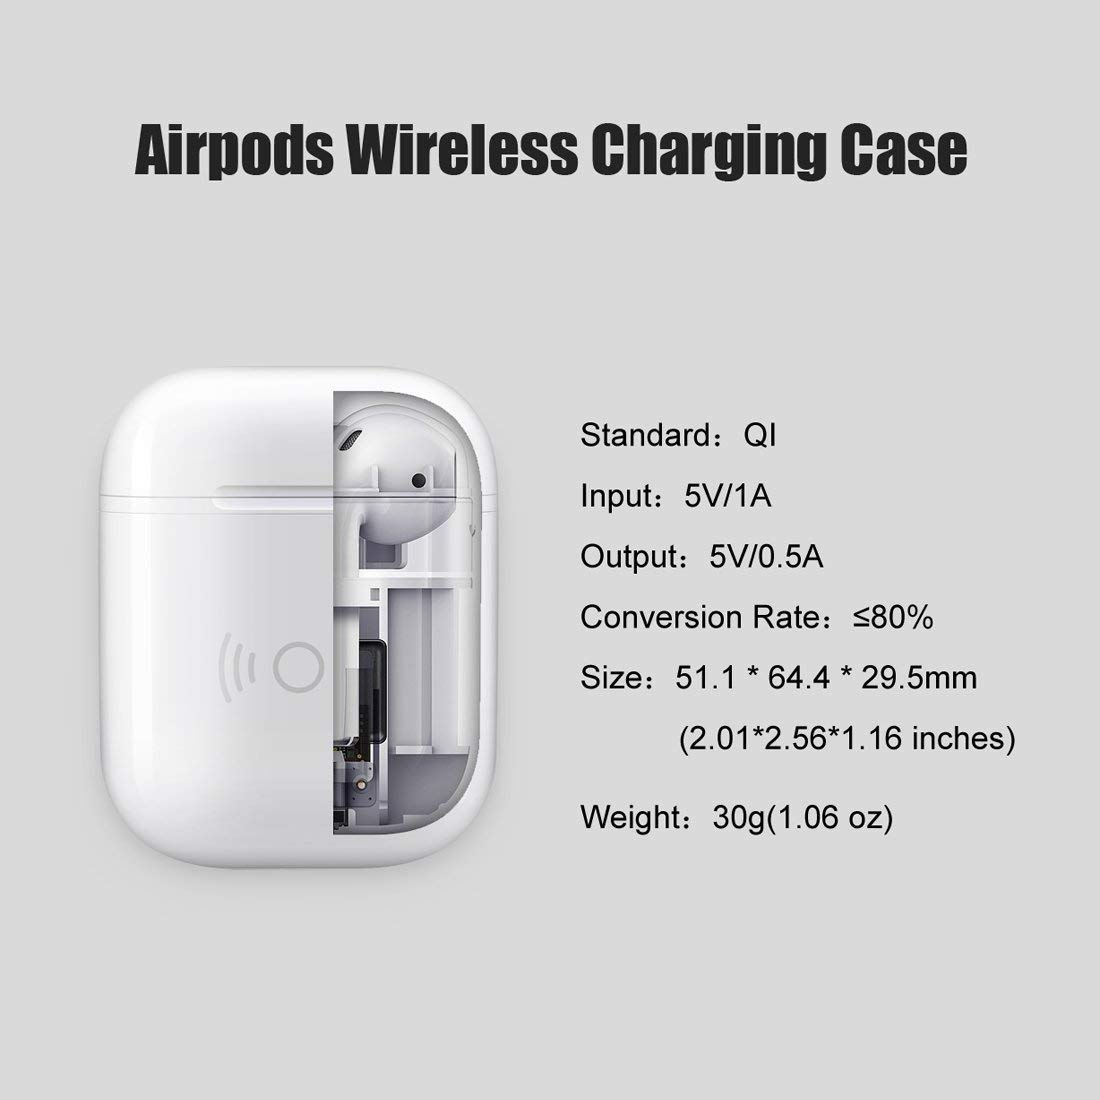 NeotrixQI Wireless Charging Case For Apple AirPods Cutaway